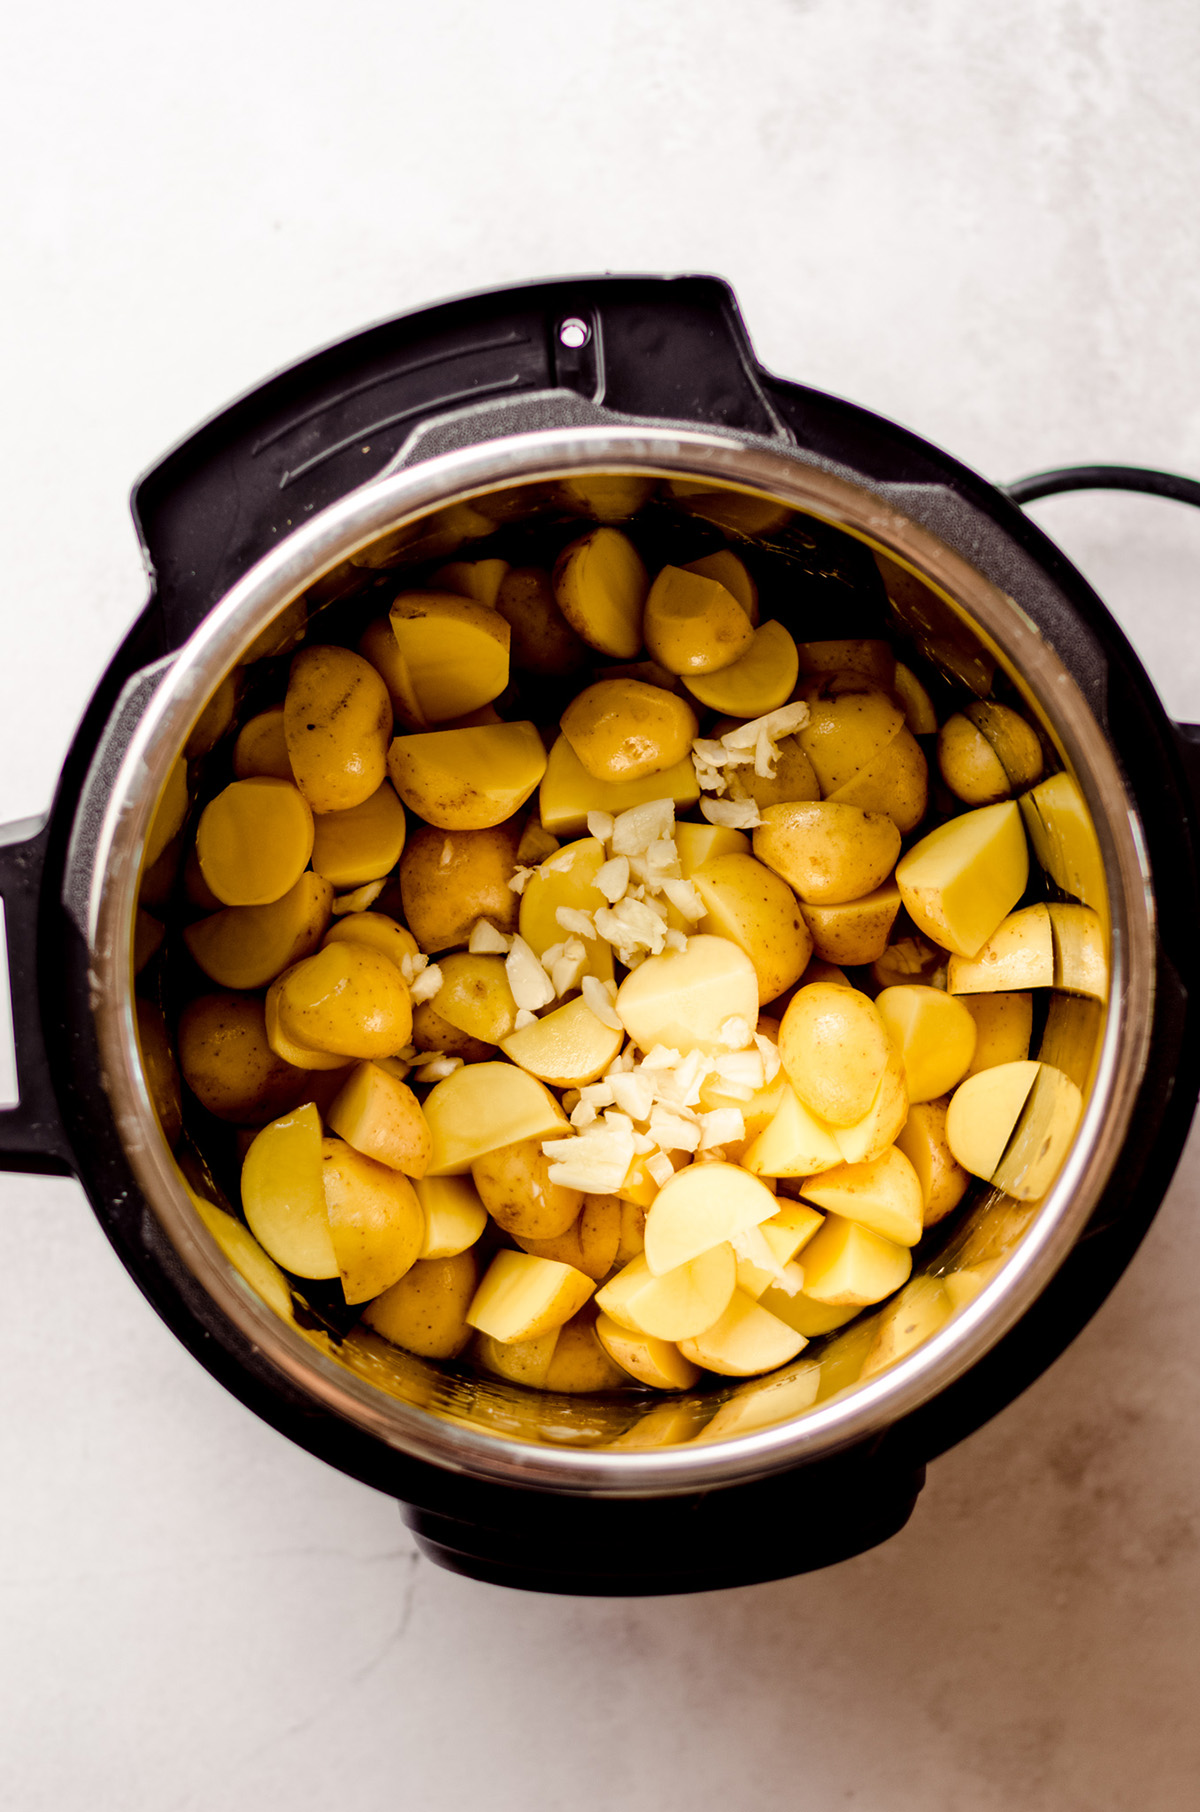 potatoes and garlic in an instant pot ready to make garlic mashed potatoes